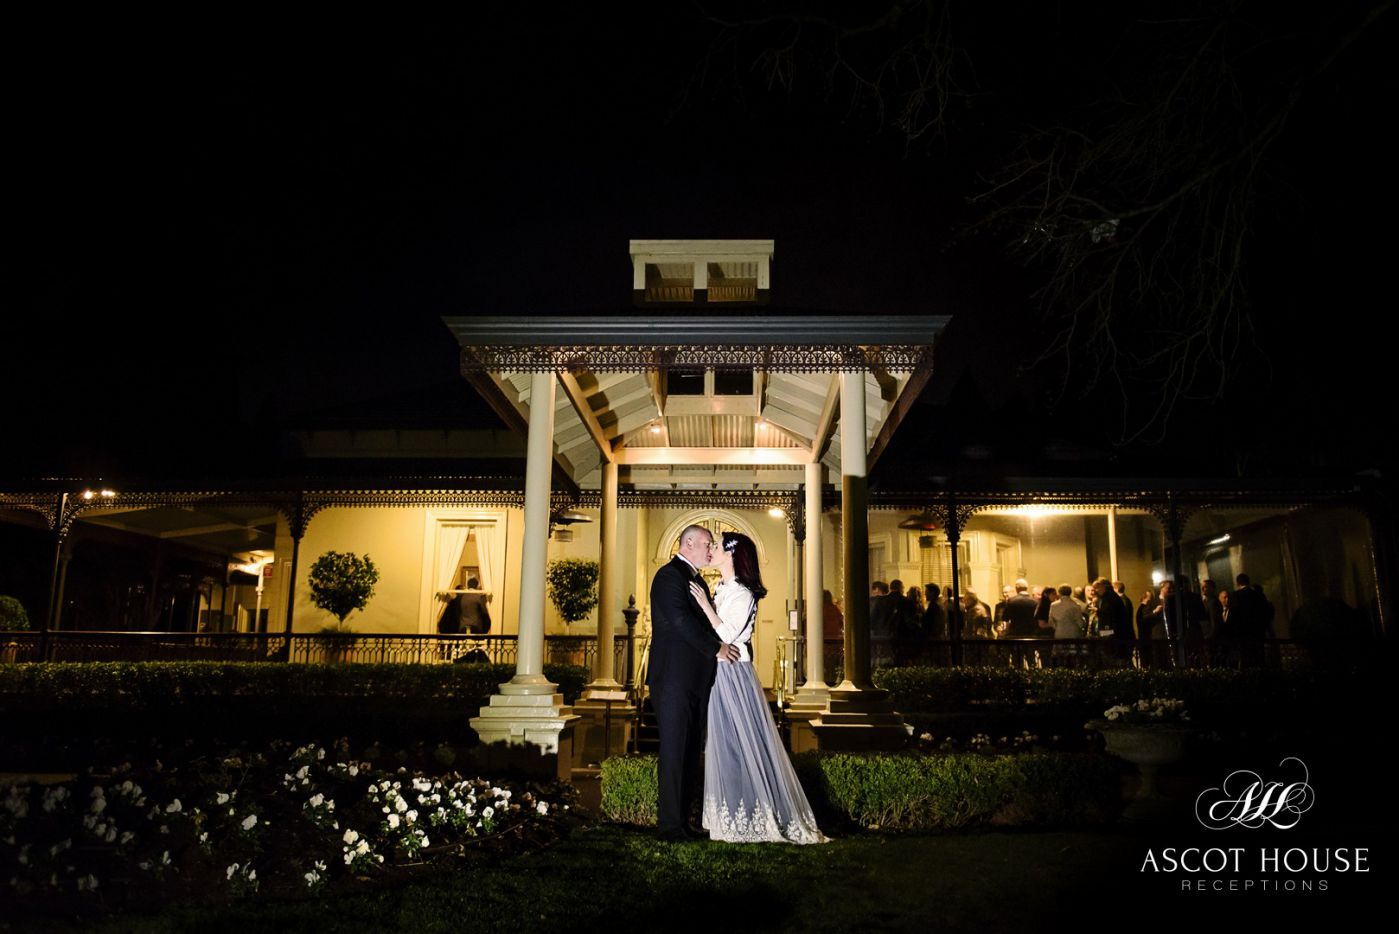 Ascot House Receptions | Melbourne Wedding Reception Venue